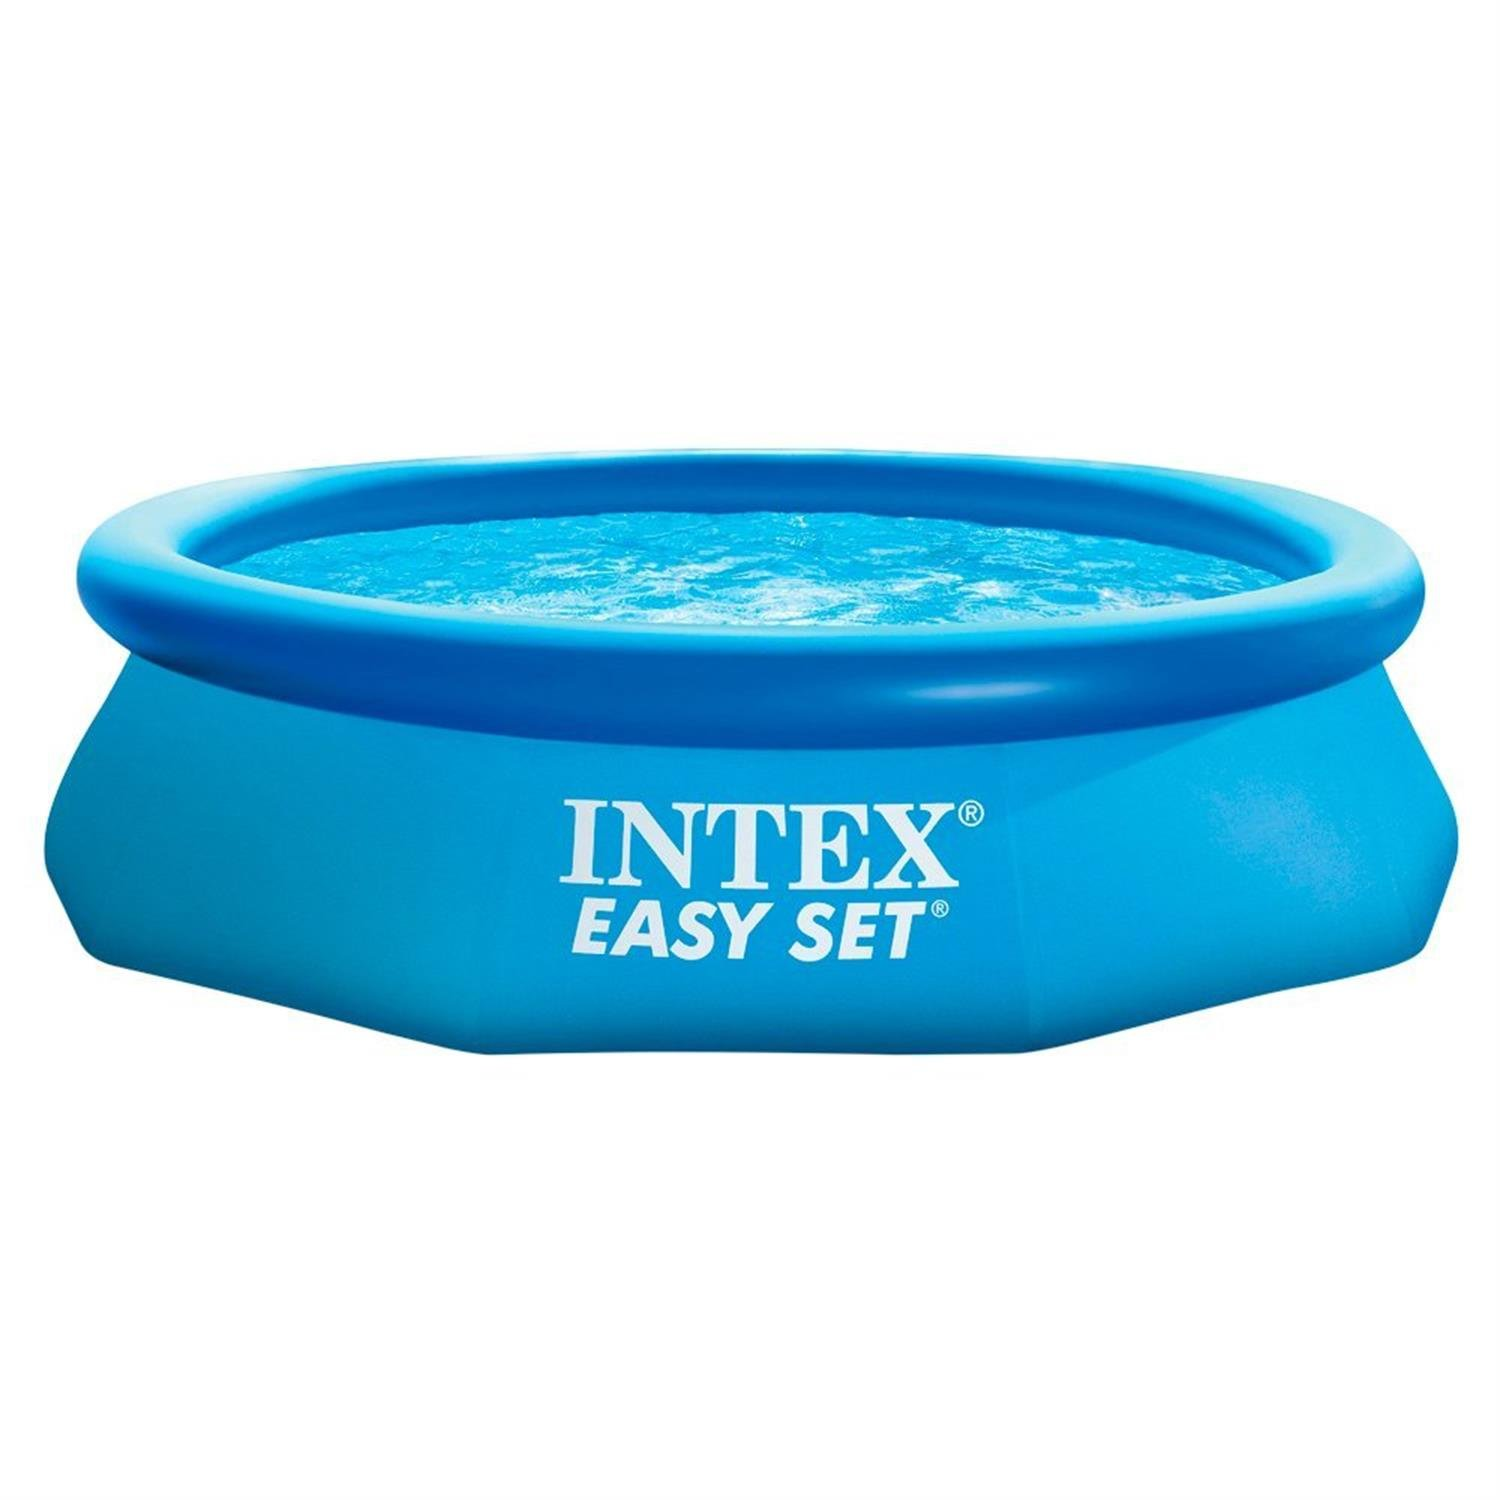 Intex Easy Set Aufstellpool,  blau, Ø 305 x 76 cm, 3,85 L, 28122GN